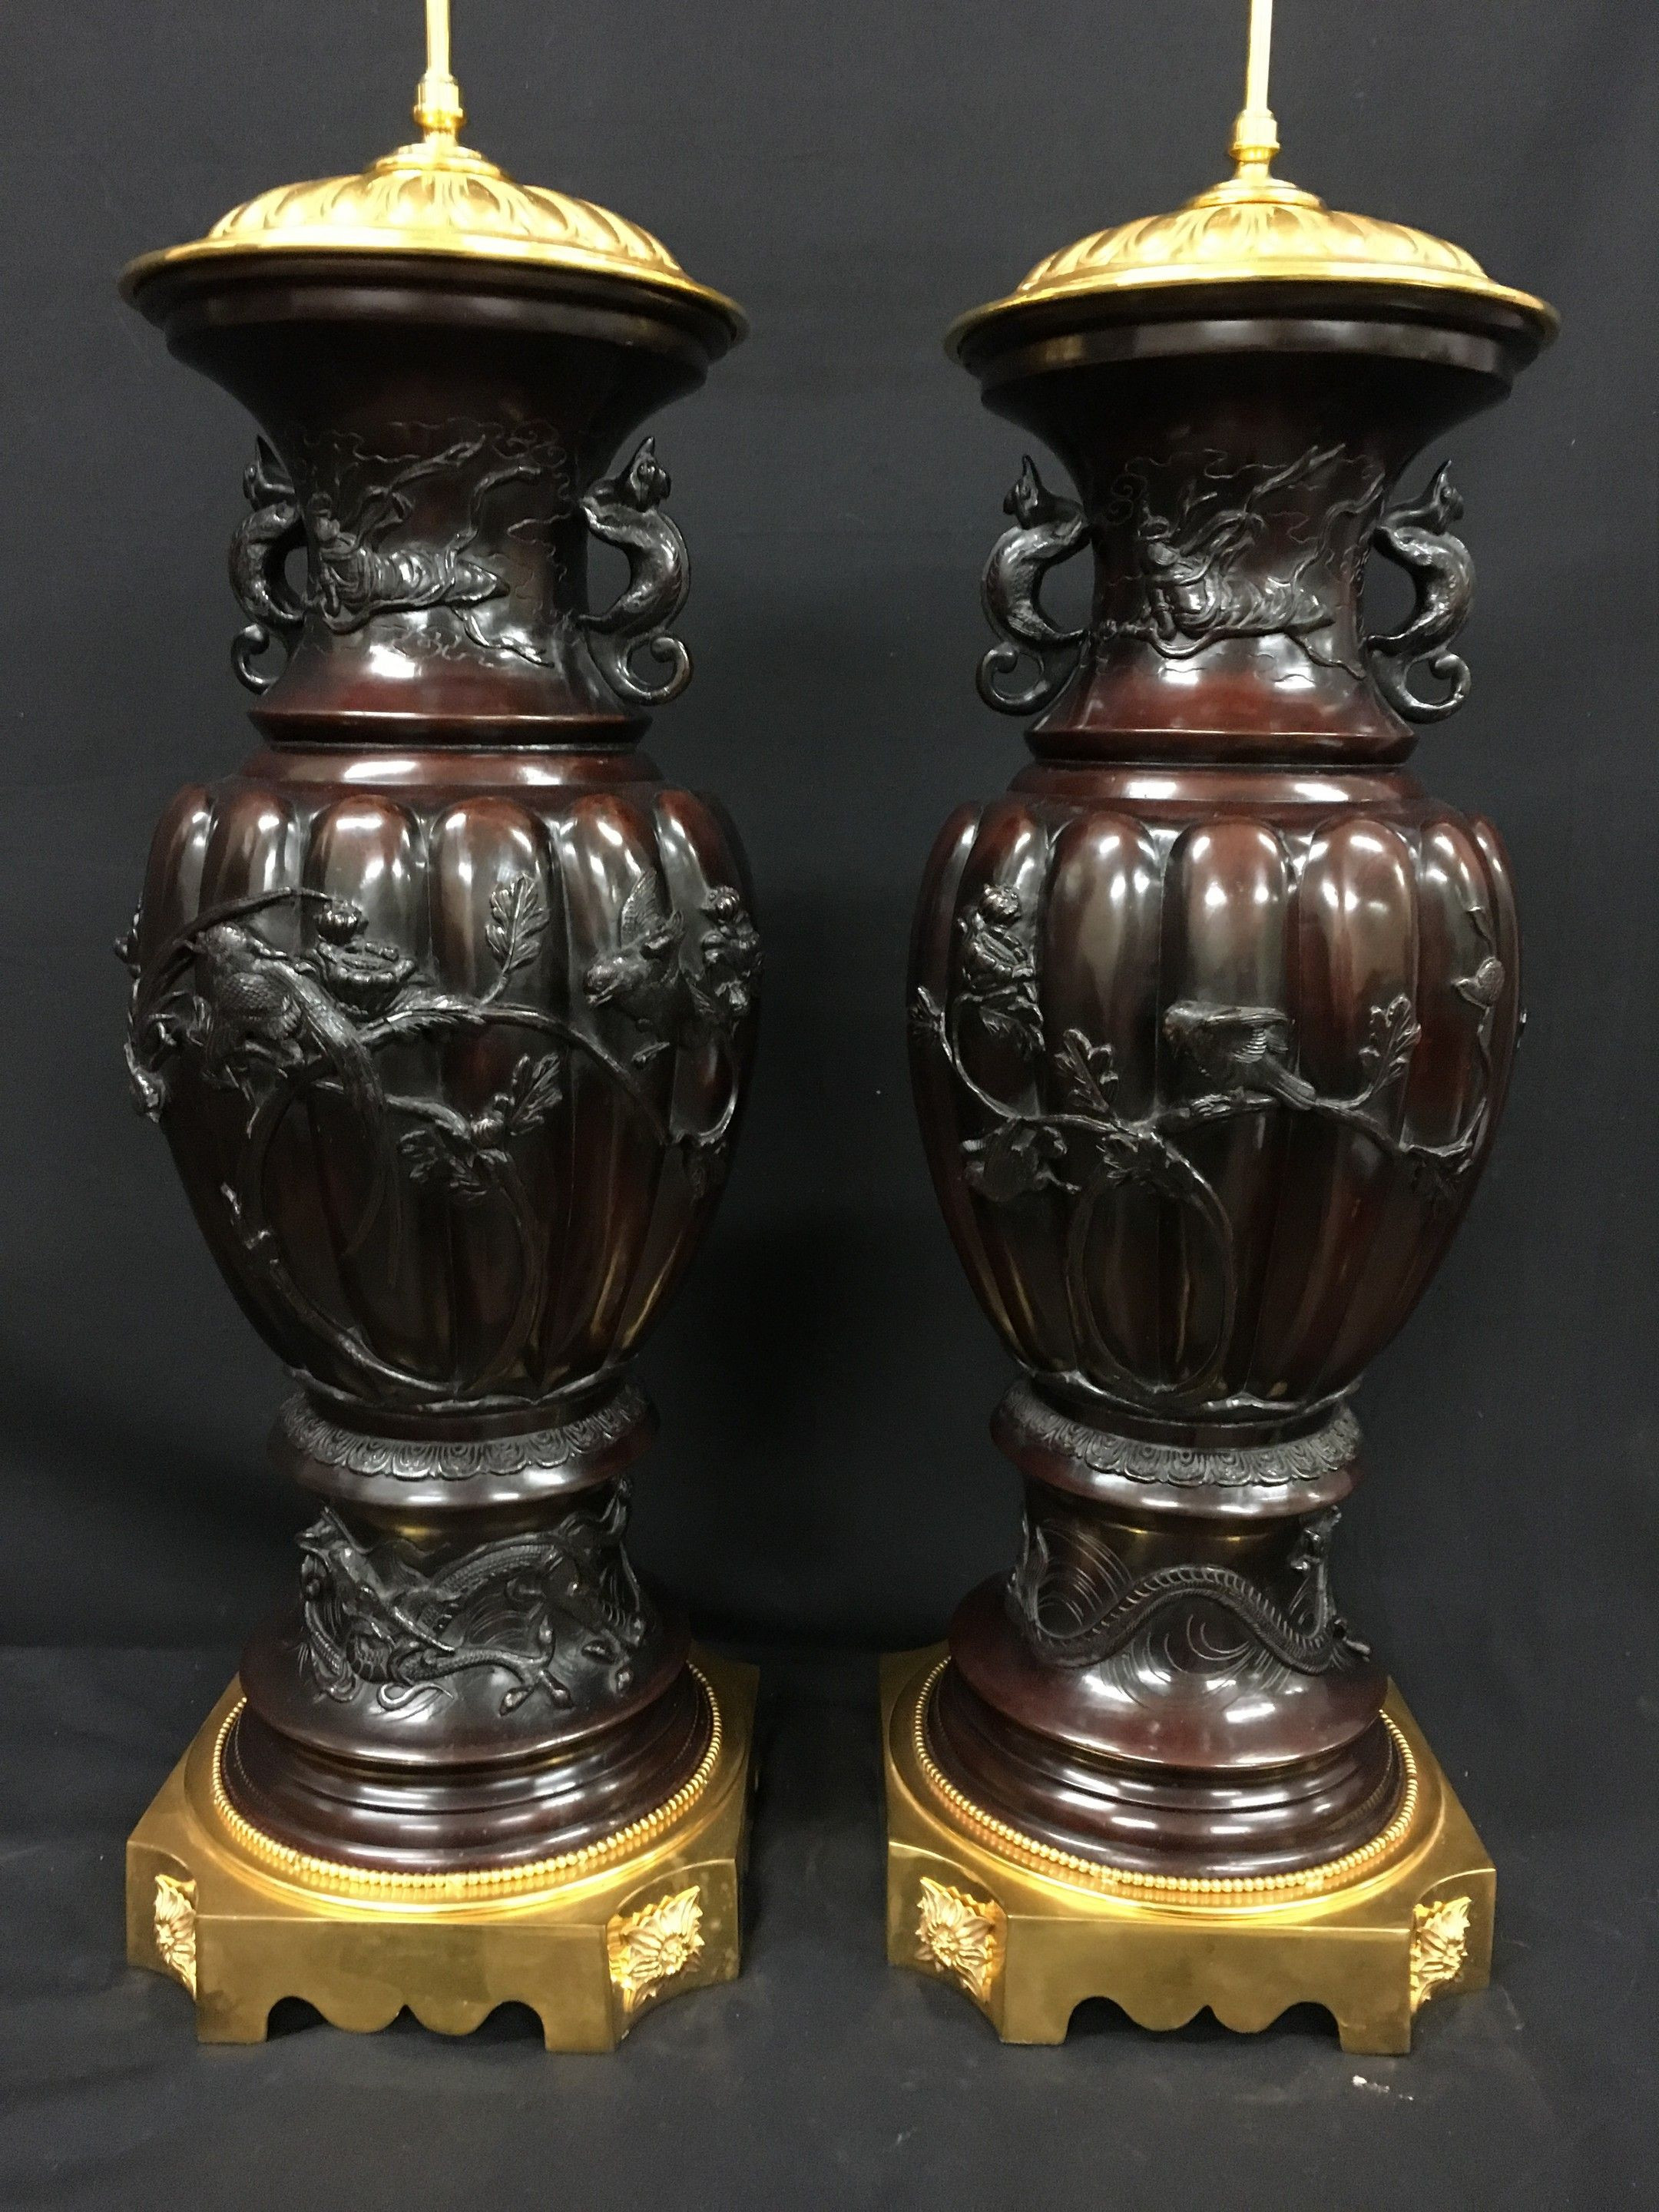 chinese floor vases uk of antique japanese vases the uks premier antiques portal online for pair large japanese bronze vases lamps